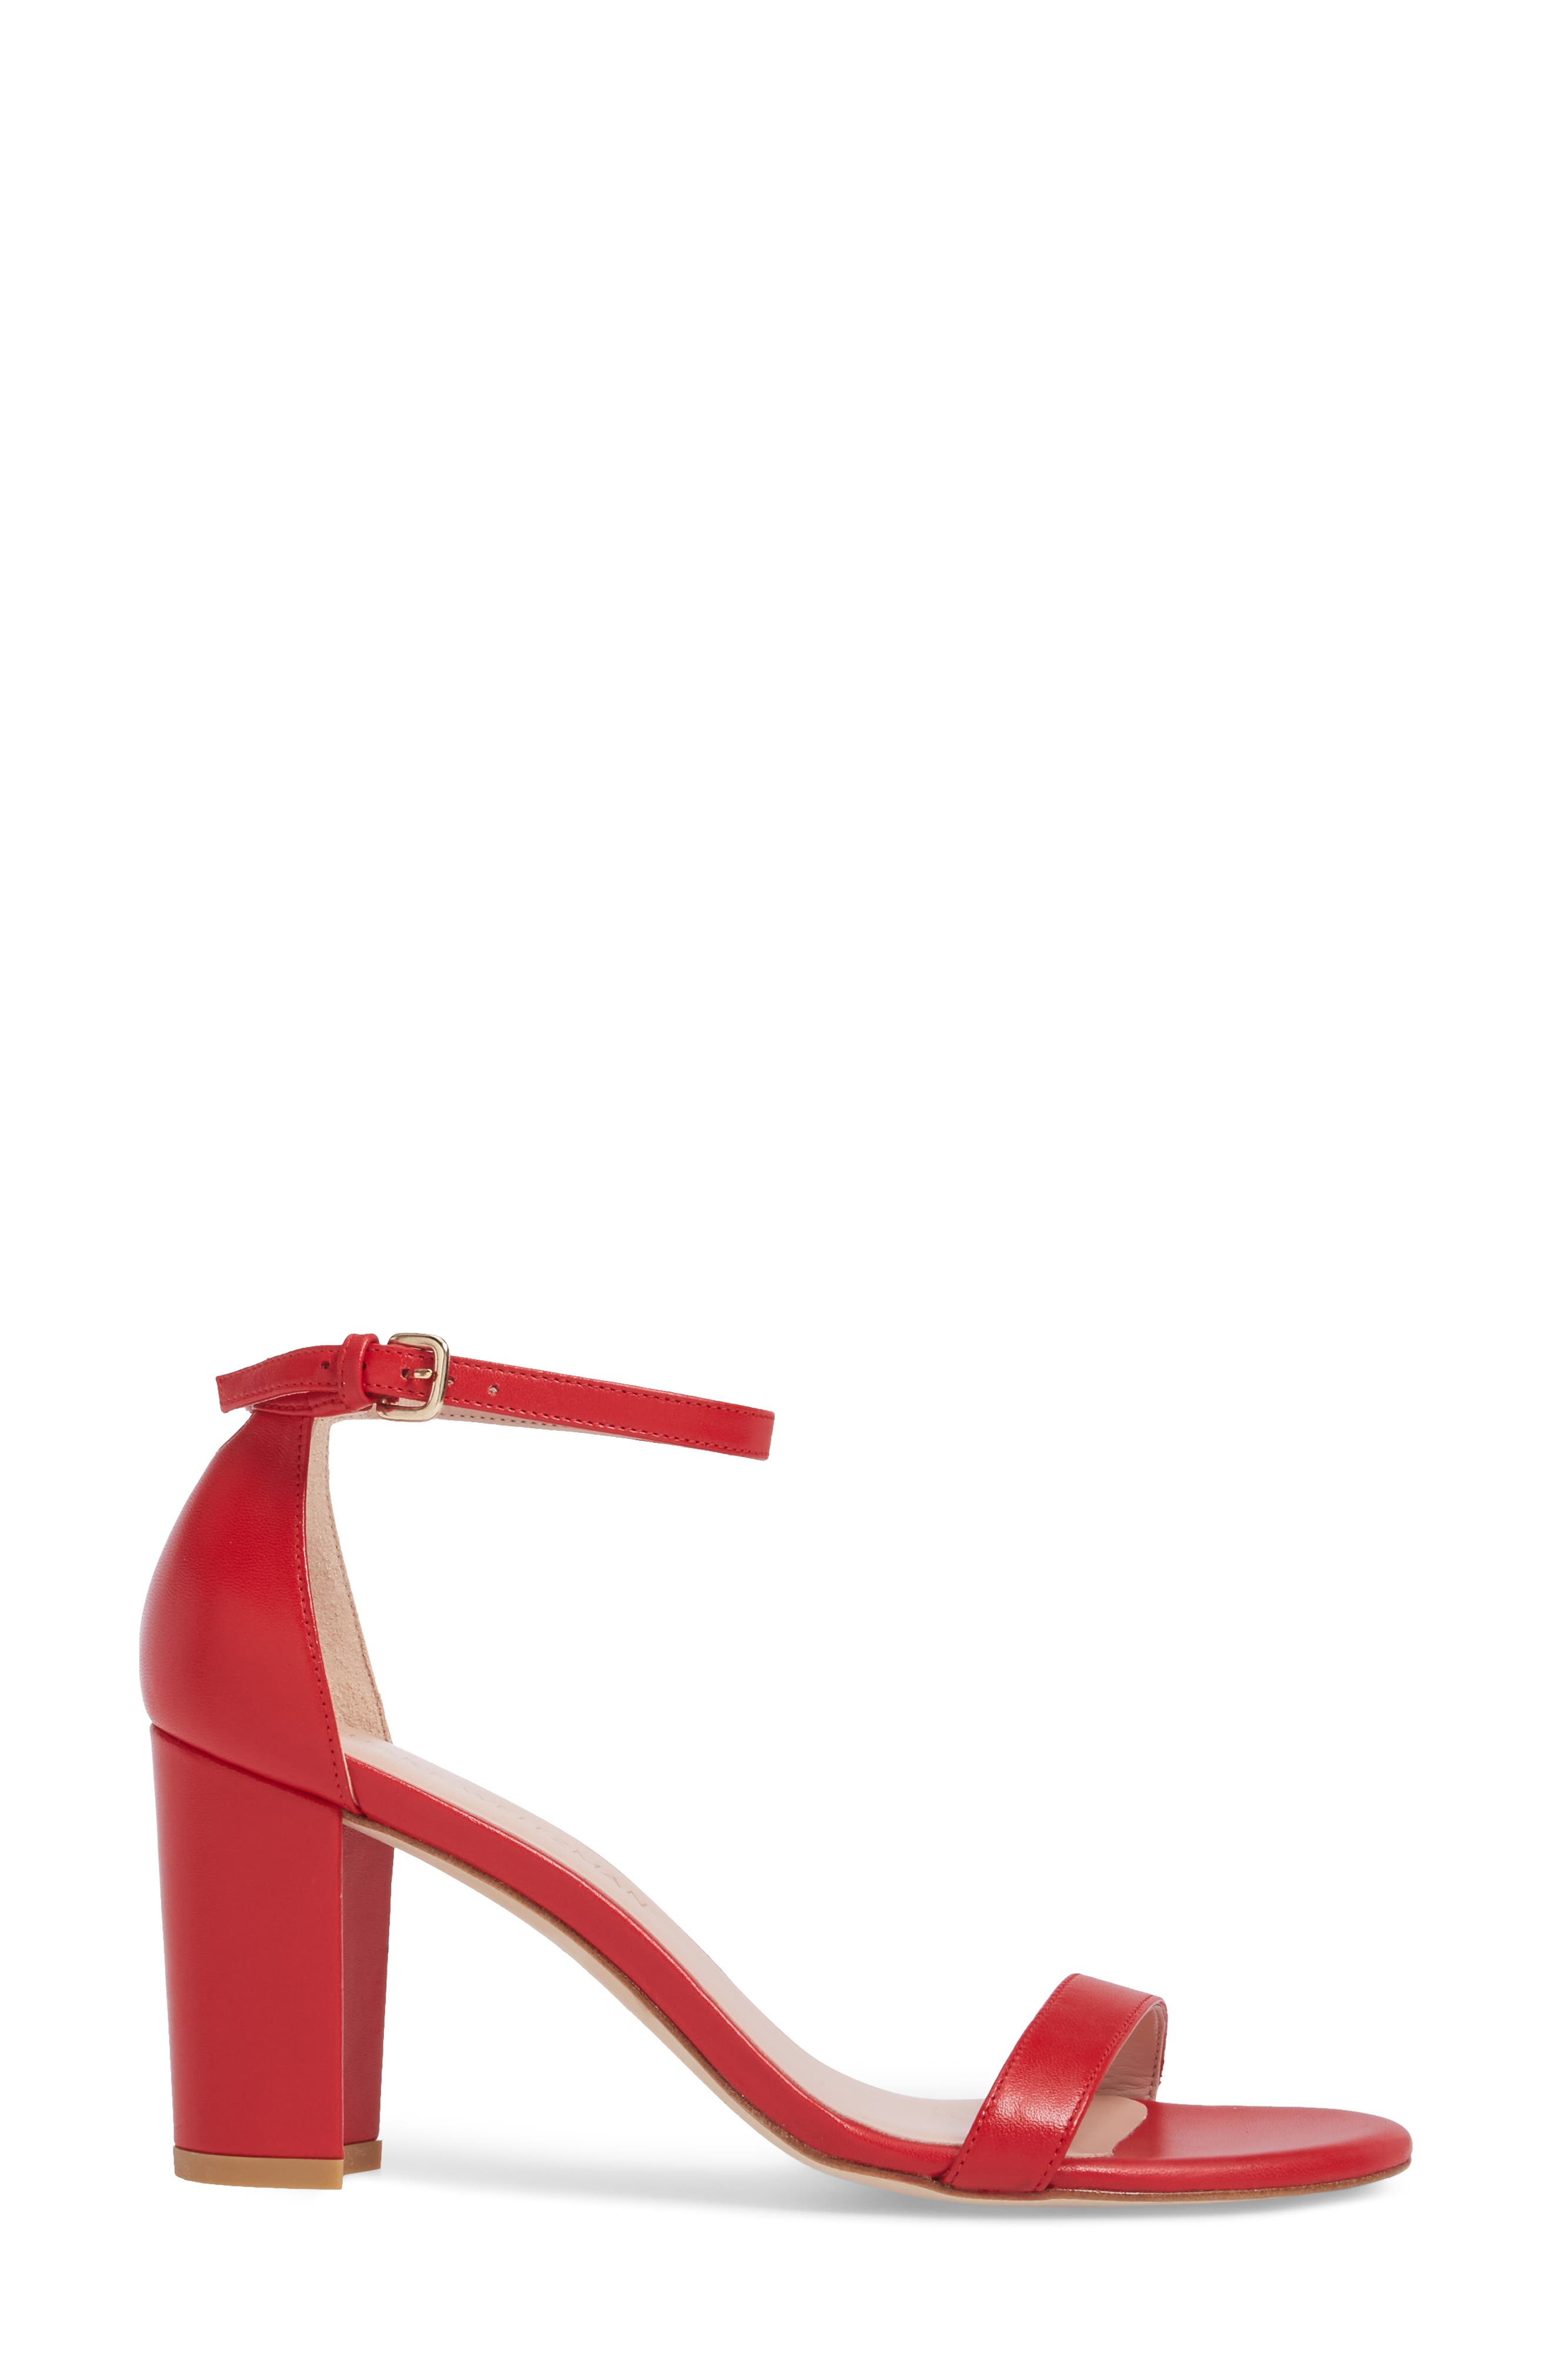 NearlyNude Ankle Strap Sandal,                             Alternate thumbnail 61, color,